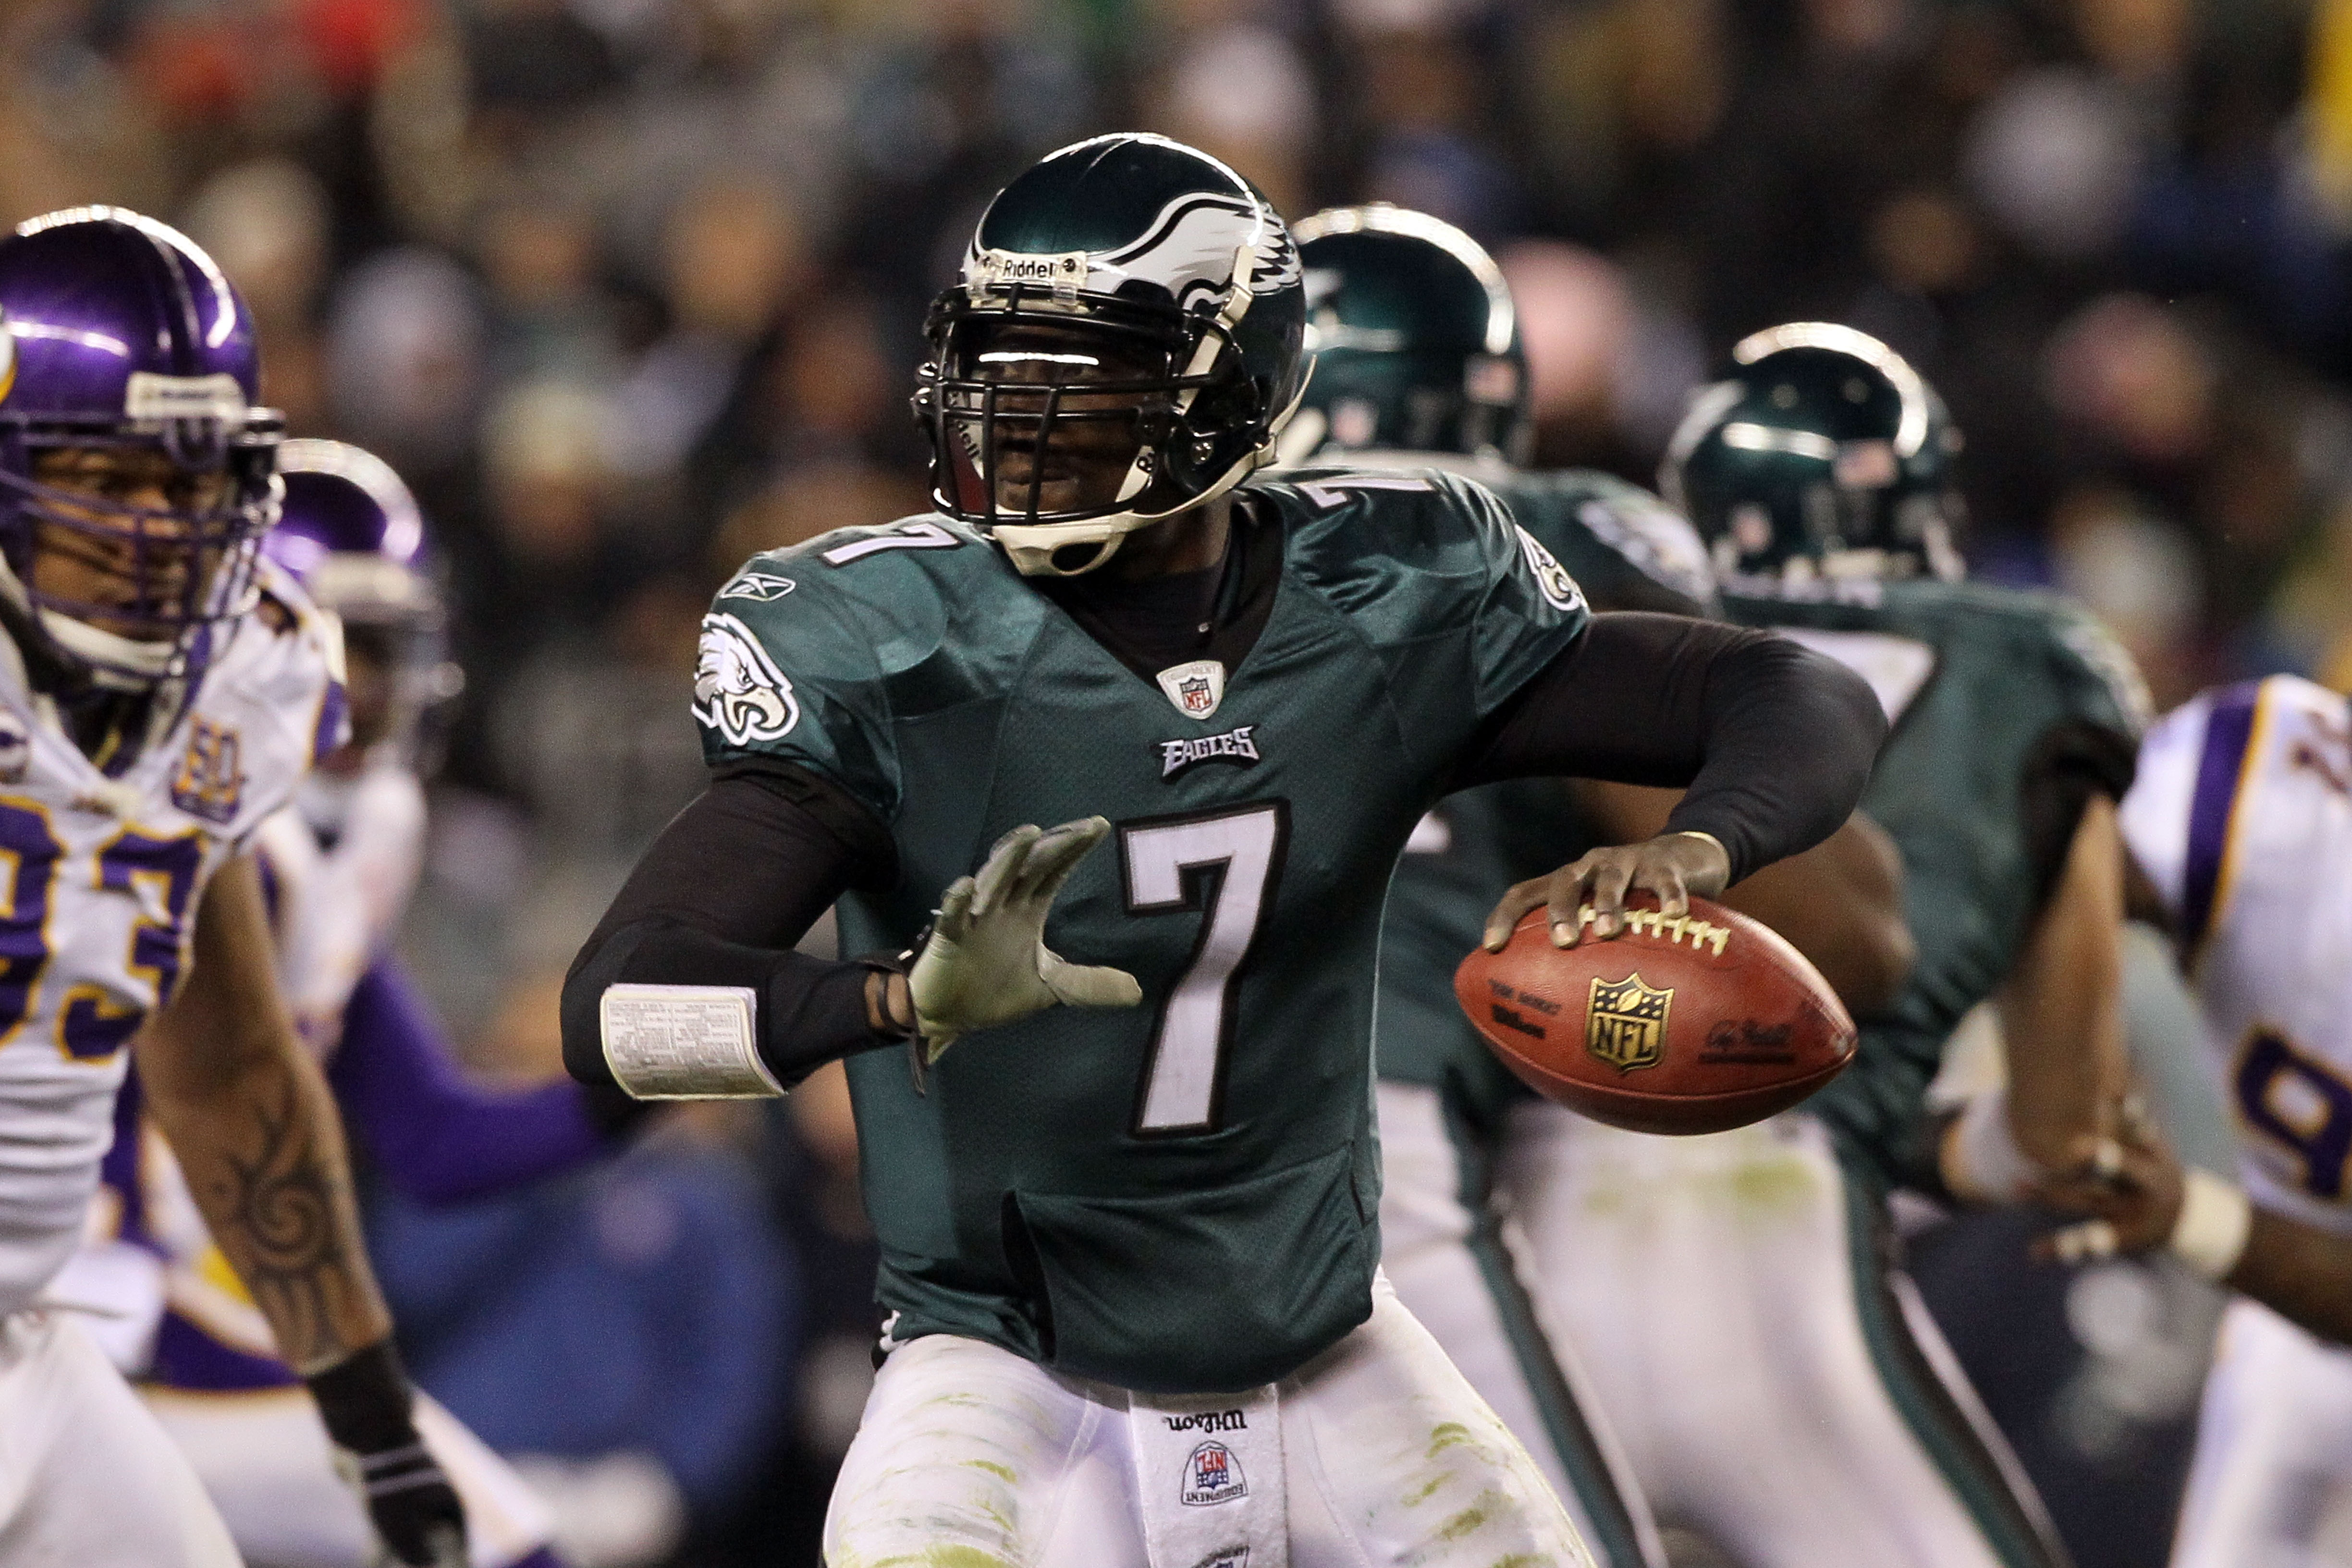 Michael Vick emerged this year as one of the best fantasy quarterbacks in the game.